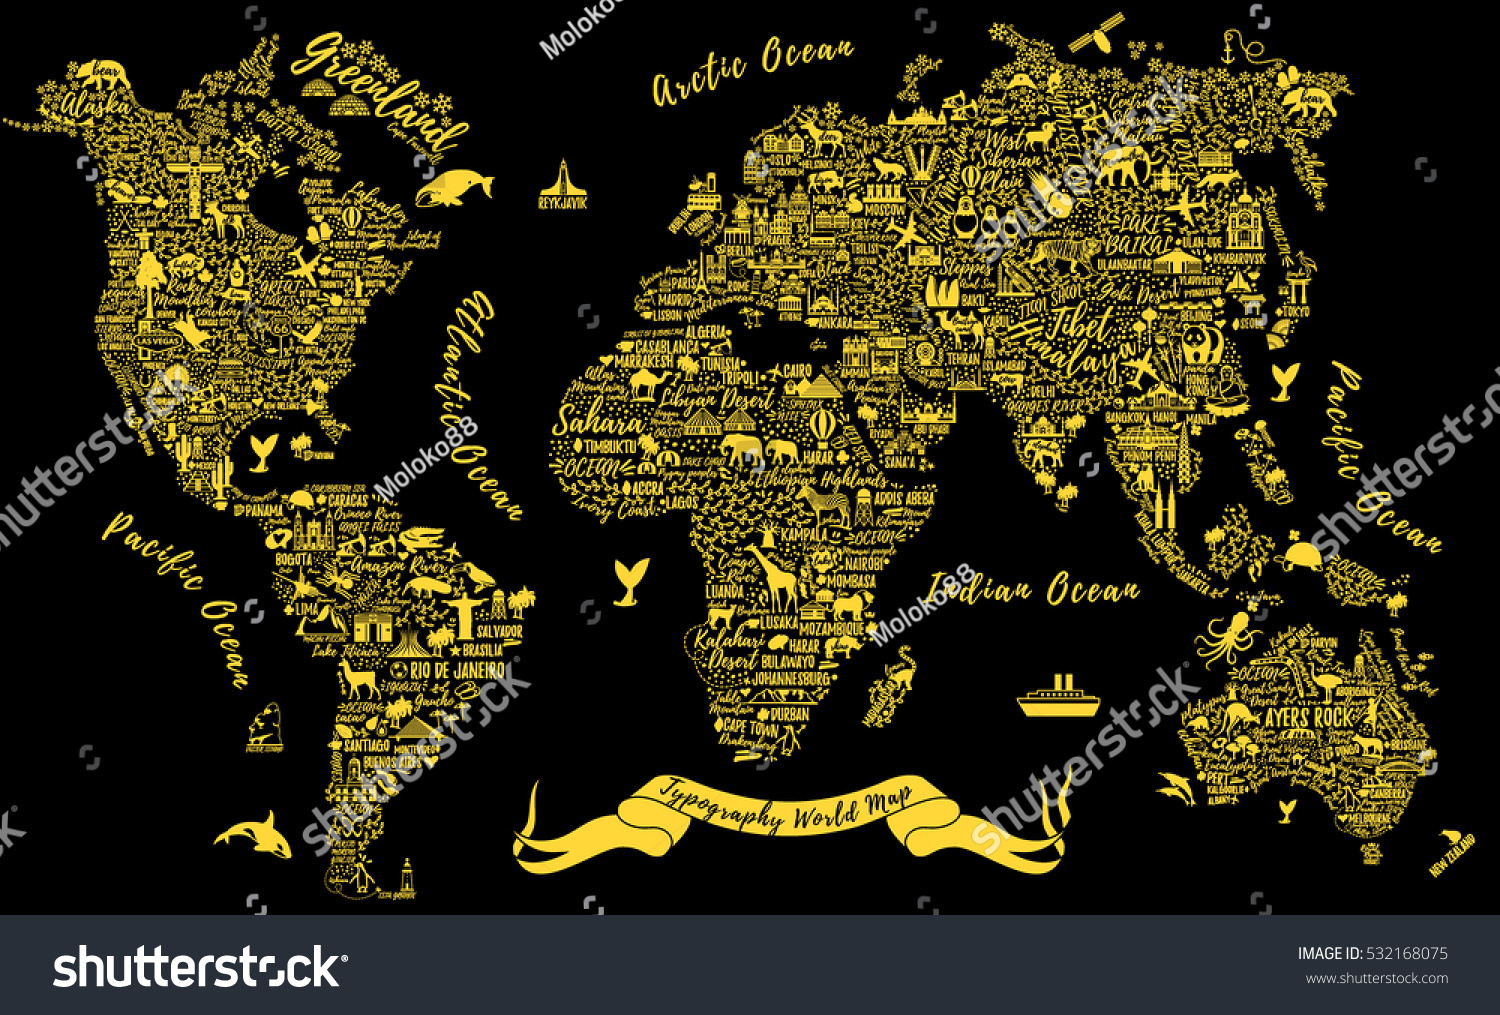 Typography world map travel poster cities vectores en stock typography world map travel poster with cities and sightseeing attractions inspirational vector illustration gumiabroncs